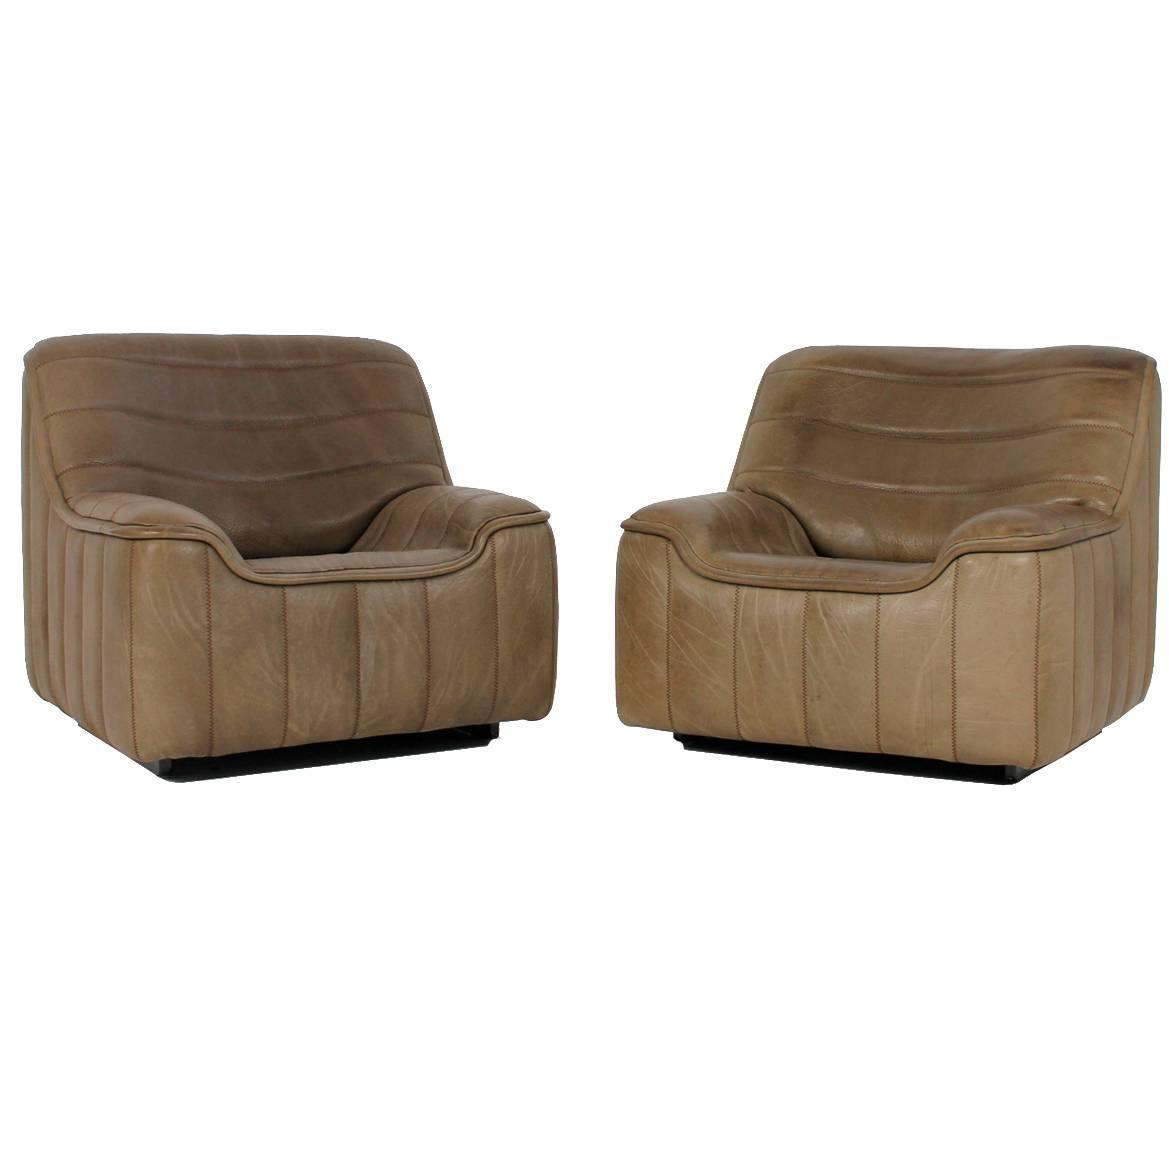 Beautiful Vintage Pair Of 1970s De Sede Ds 84 Buffalo Leather Lounge Chairs At 1stdibs